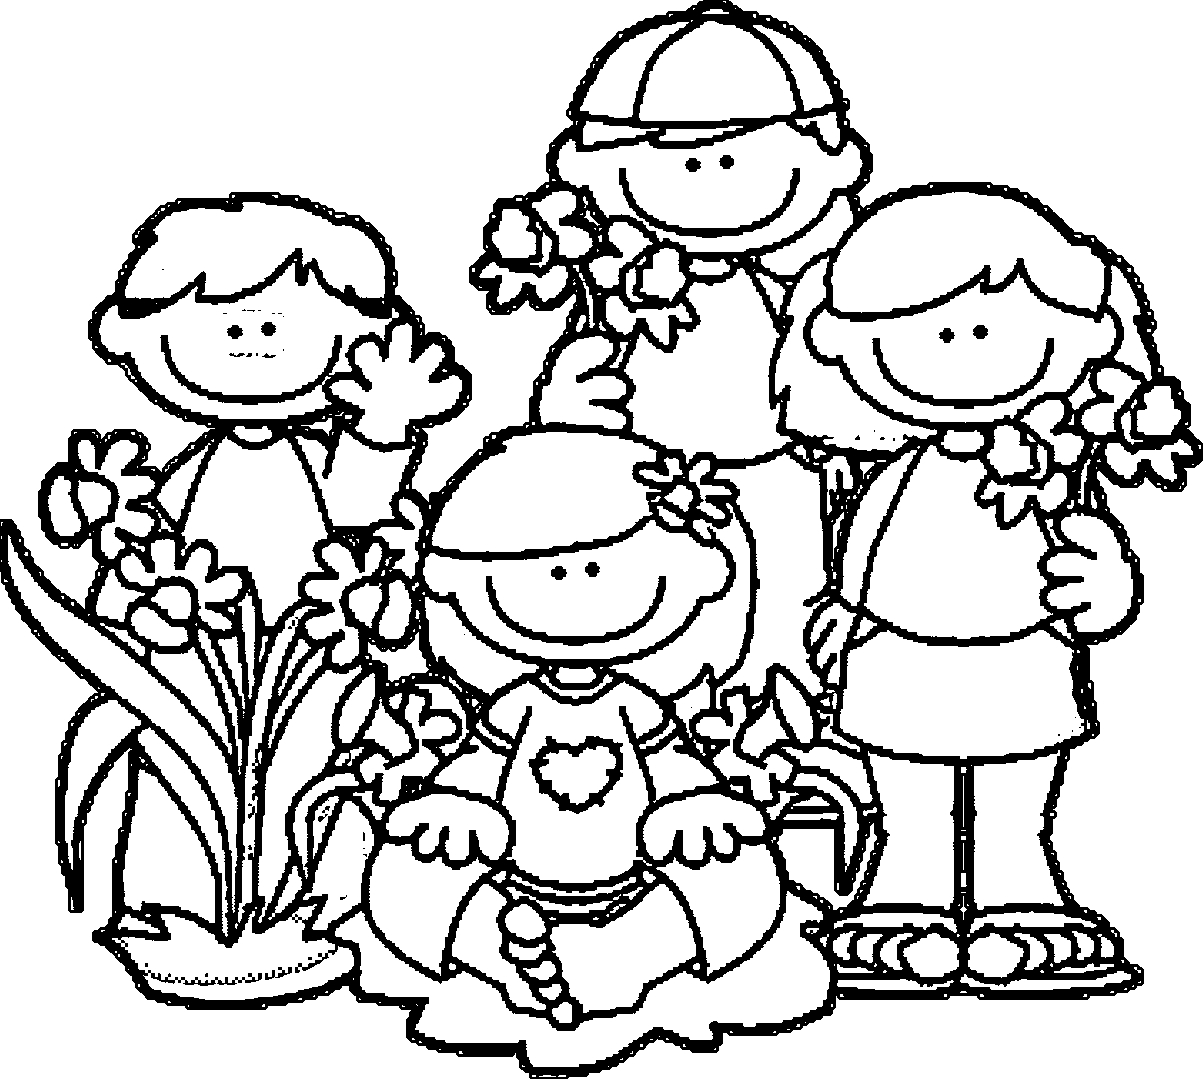 Spring Break Coloring Pages - Spring Break Coloring Page Coloring Home